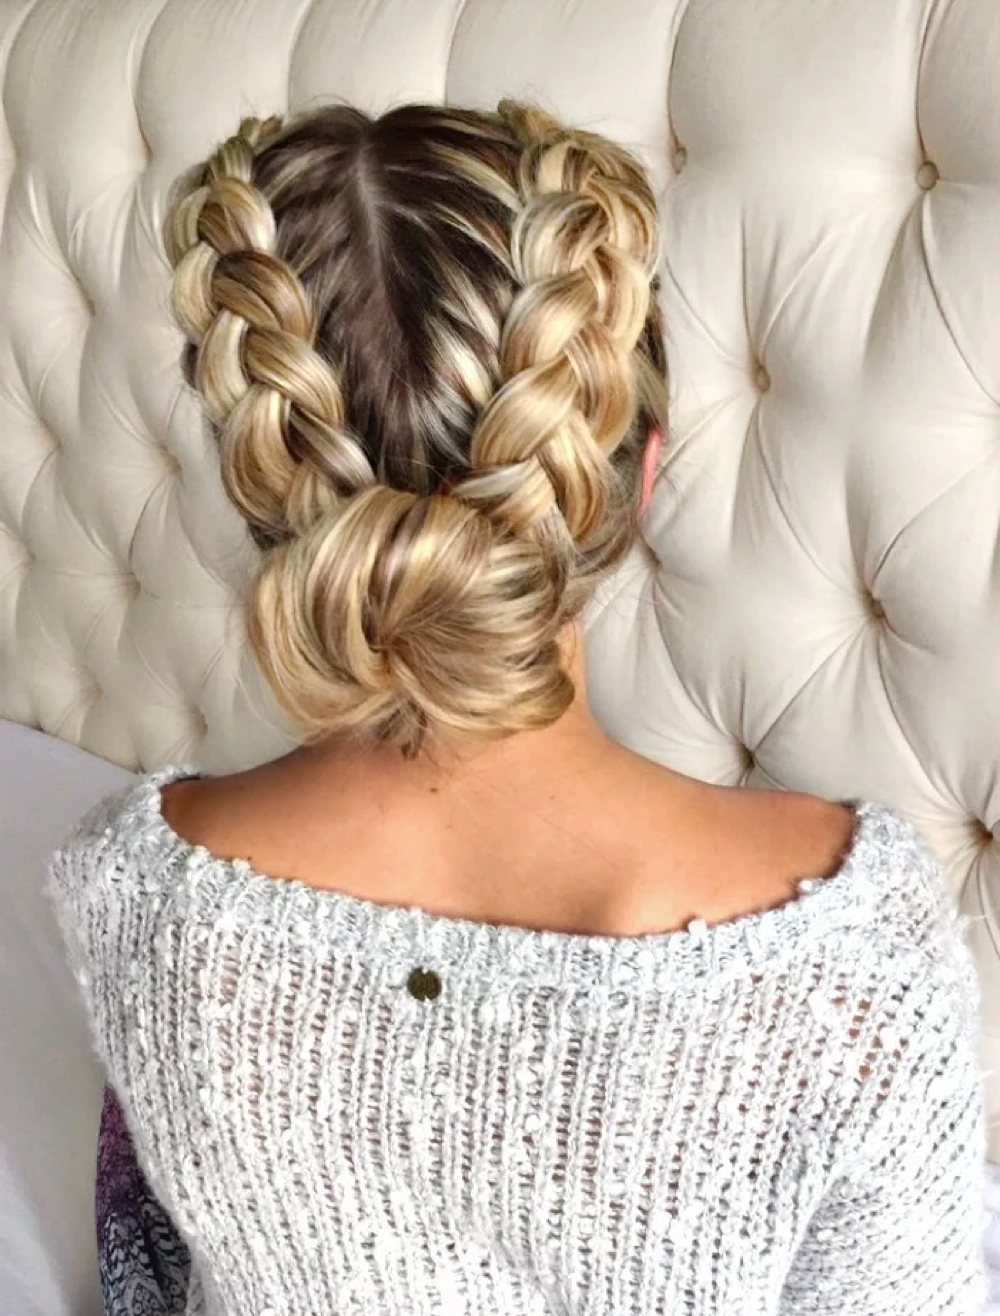 29 Gorgeous Braided Updo Ideas For 2019 With Regard To Most Up To Date Plaited Low Bun Braided Hairstyles (View 6 of 20)